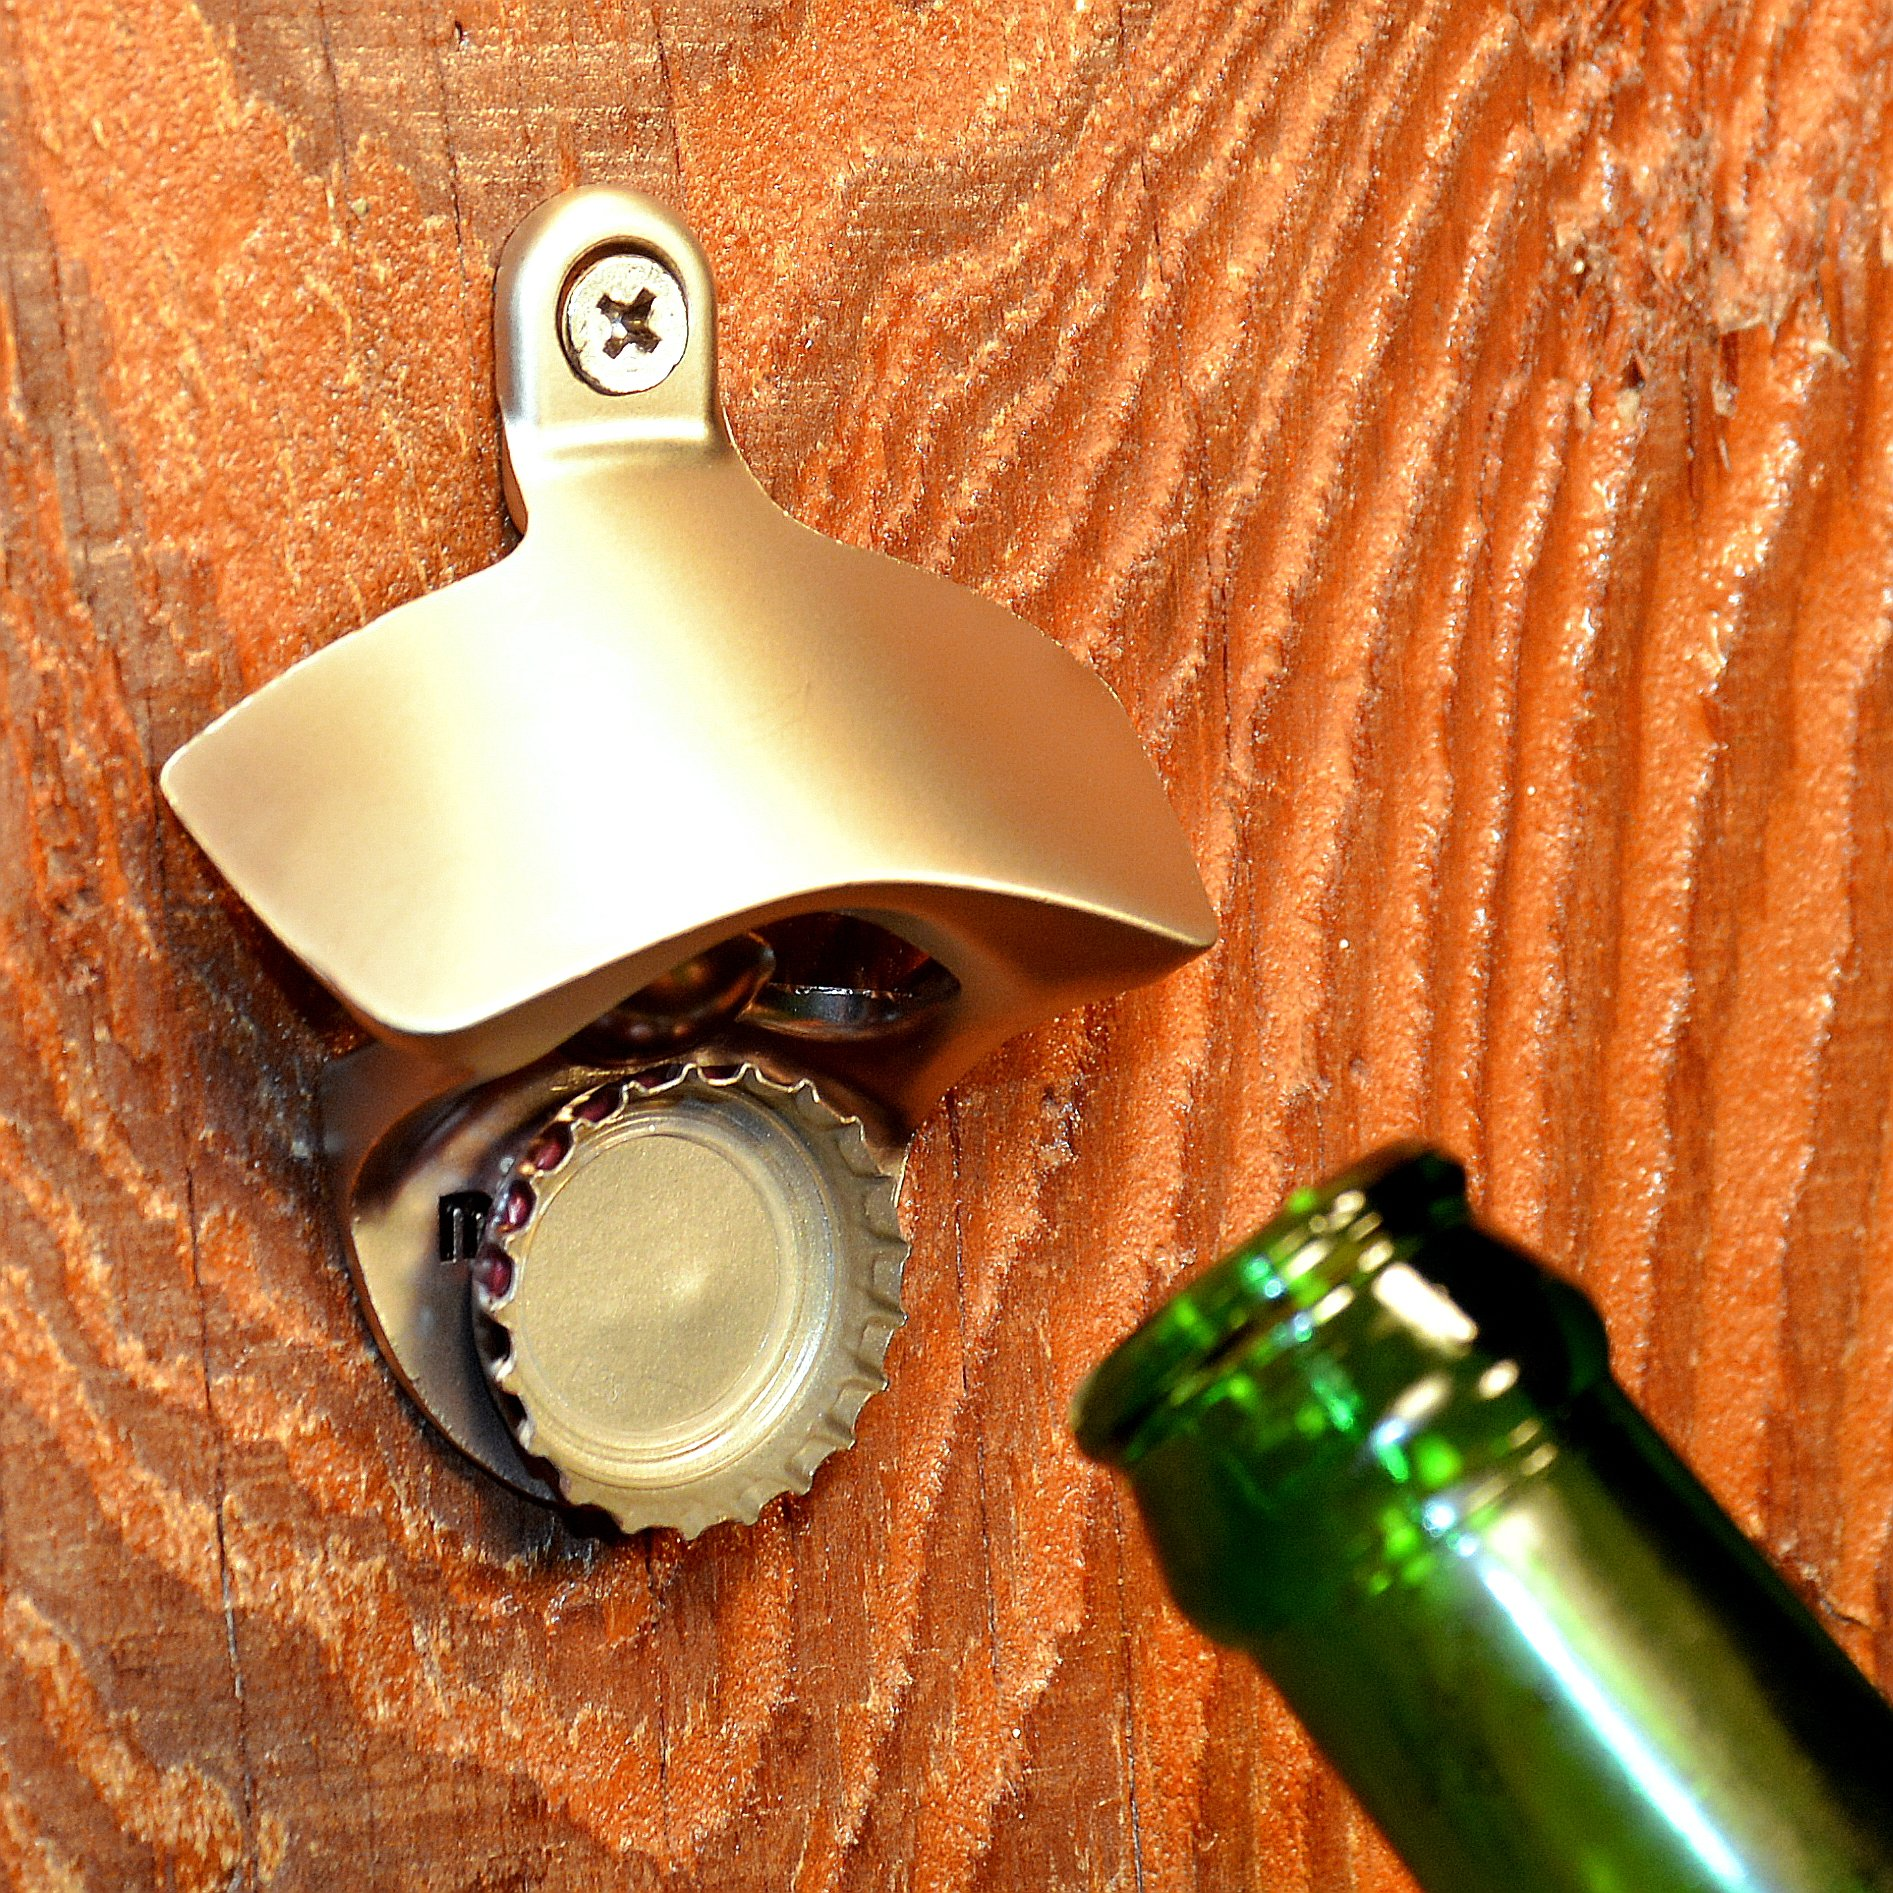 Wall Mounted Bottle Opener That Catches Bottle Caps MAGCAP